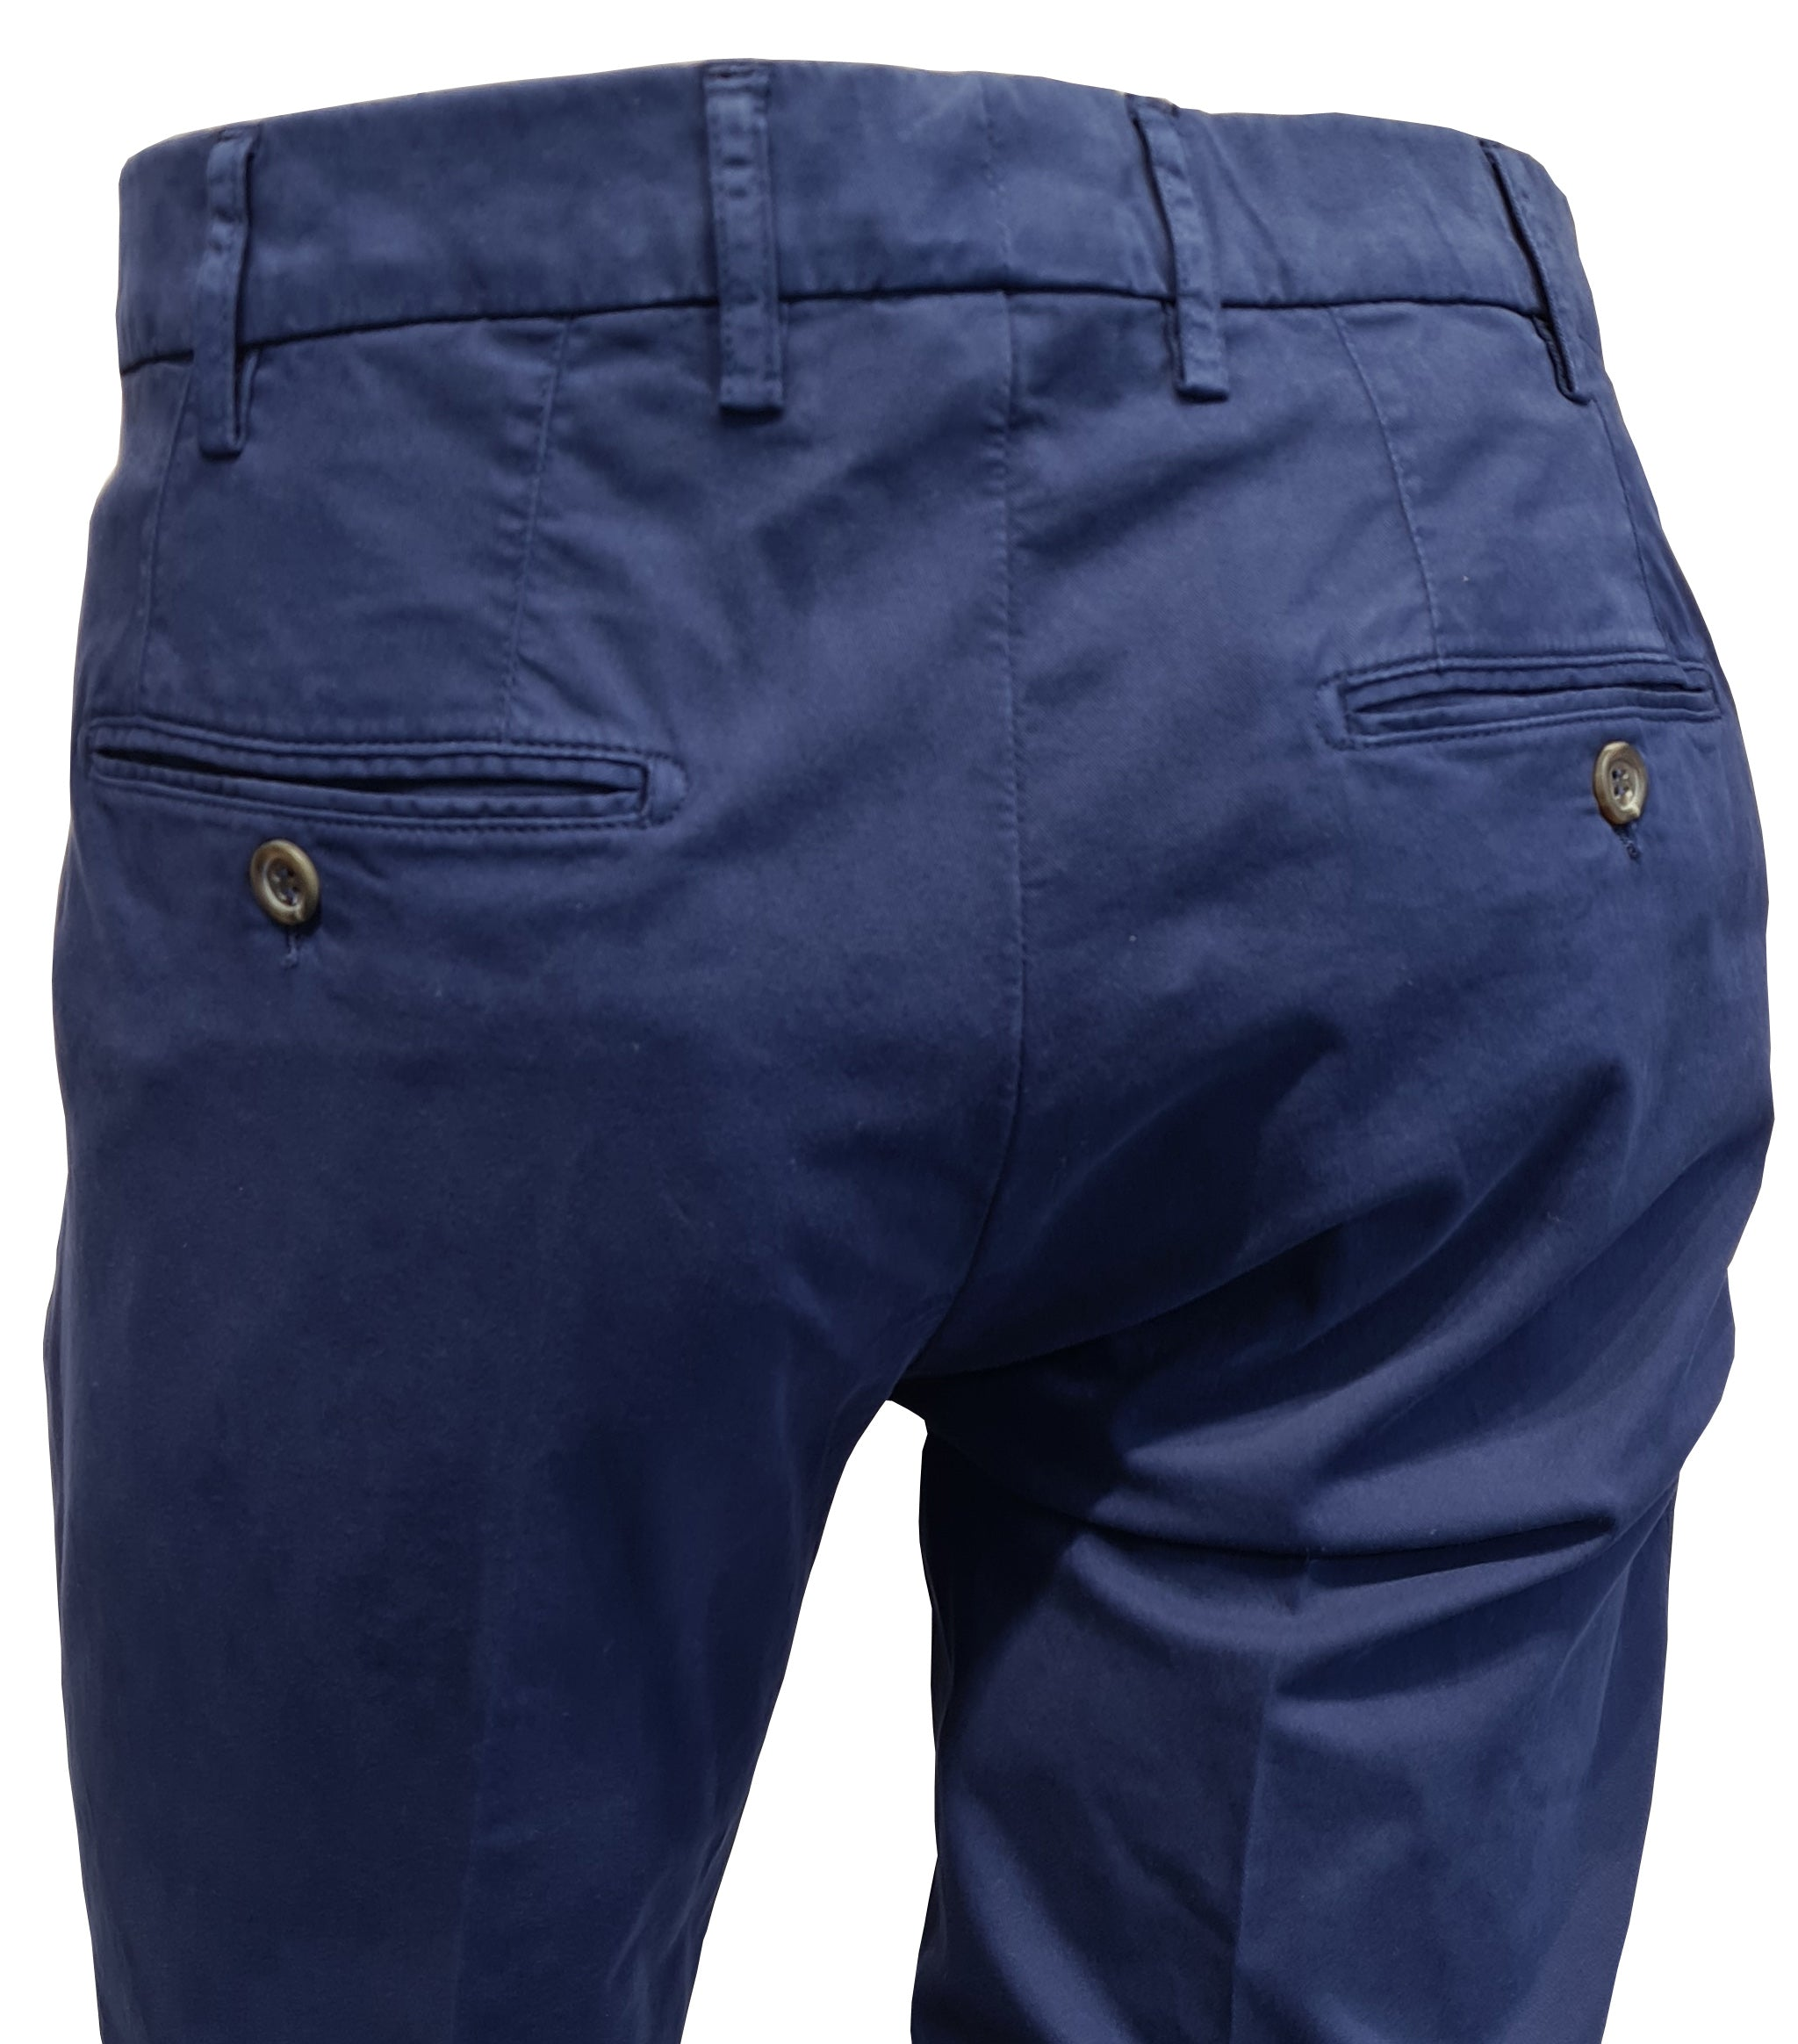 Canali - Blue Cotton Stretch Chinos 91633-PT00452-320